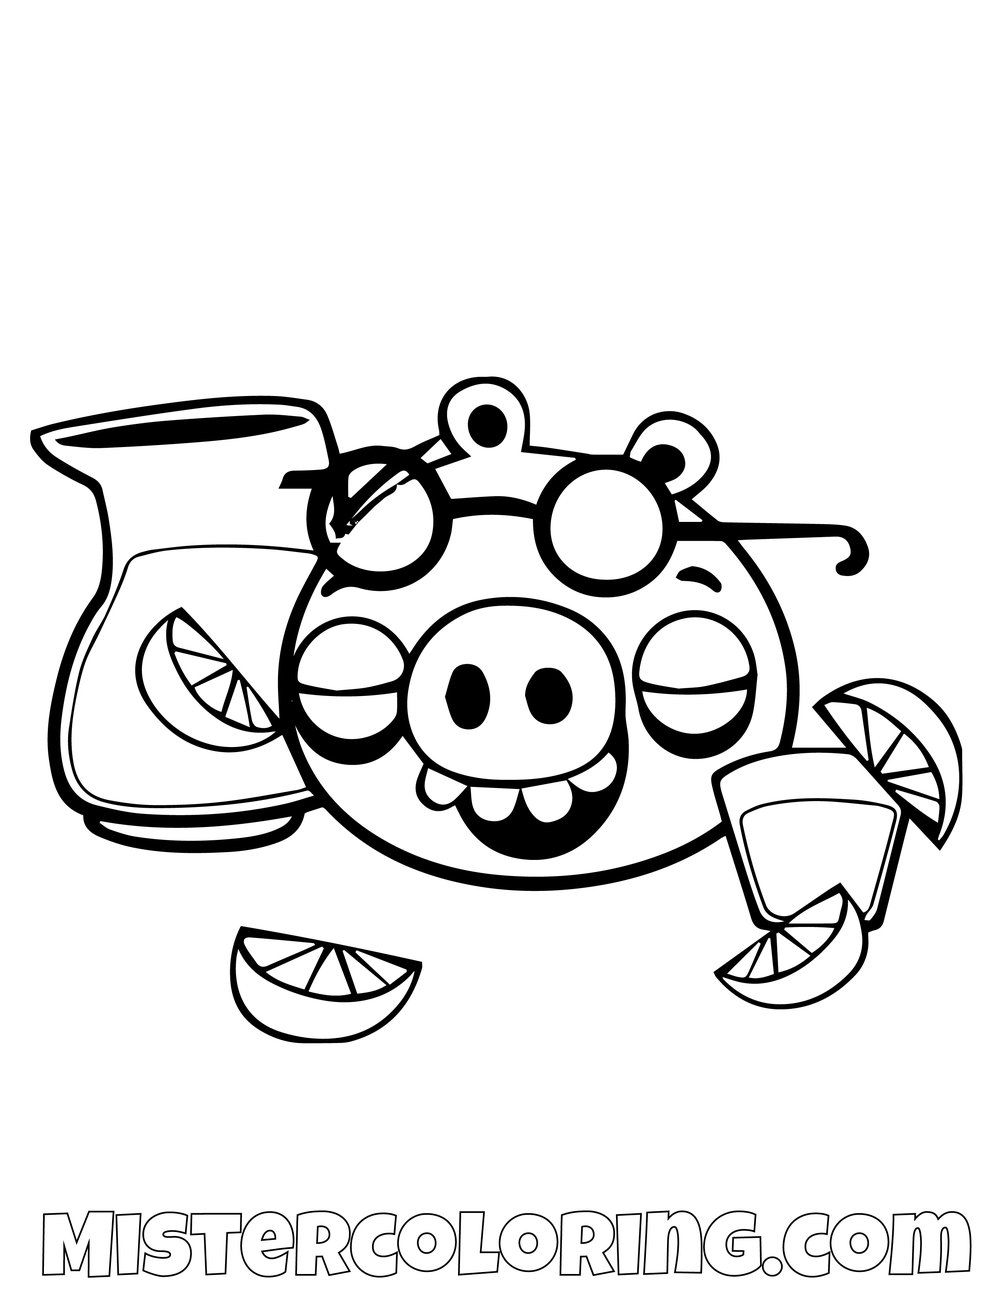 Pig Drinking Lemonade Angry Birds Coloring Pages Bird Coloring